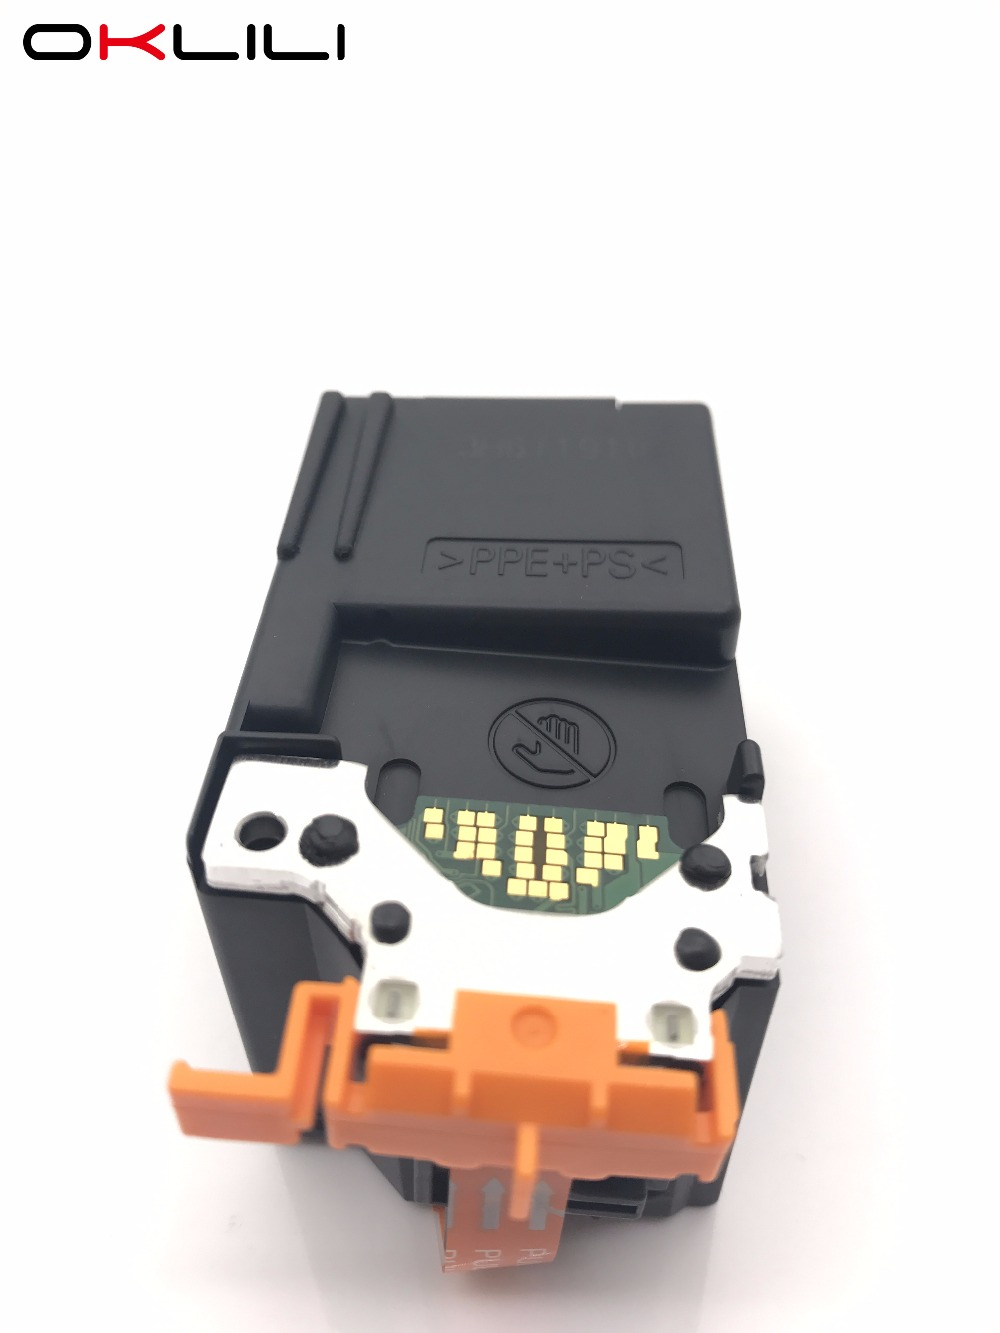 OKLILI ORIGINAL NEW QY6-0038 QY6-0038-000 Printhead Print Head Printer Head for Canon BJ S200 S200x S200SP S200SPx new original print head qy6 0061 00 printhead for canon ip4300 ip5200 ip5200r mp600 mp600r mp800 mp800r mp830 plotter